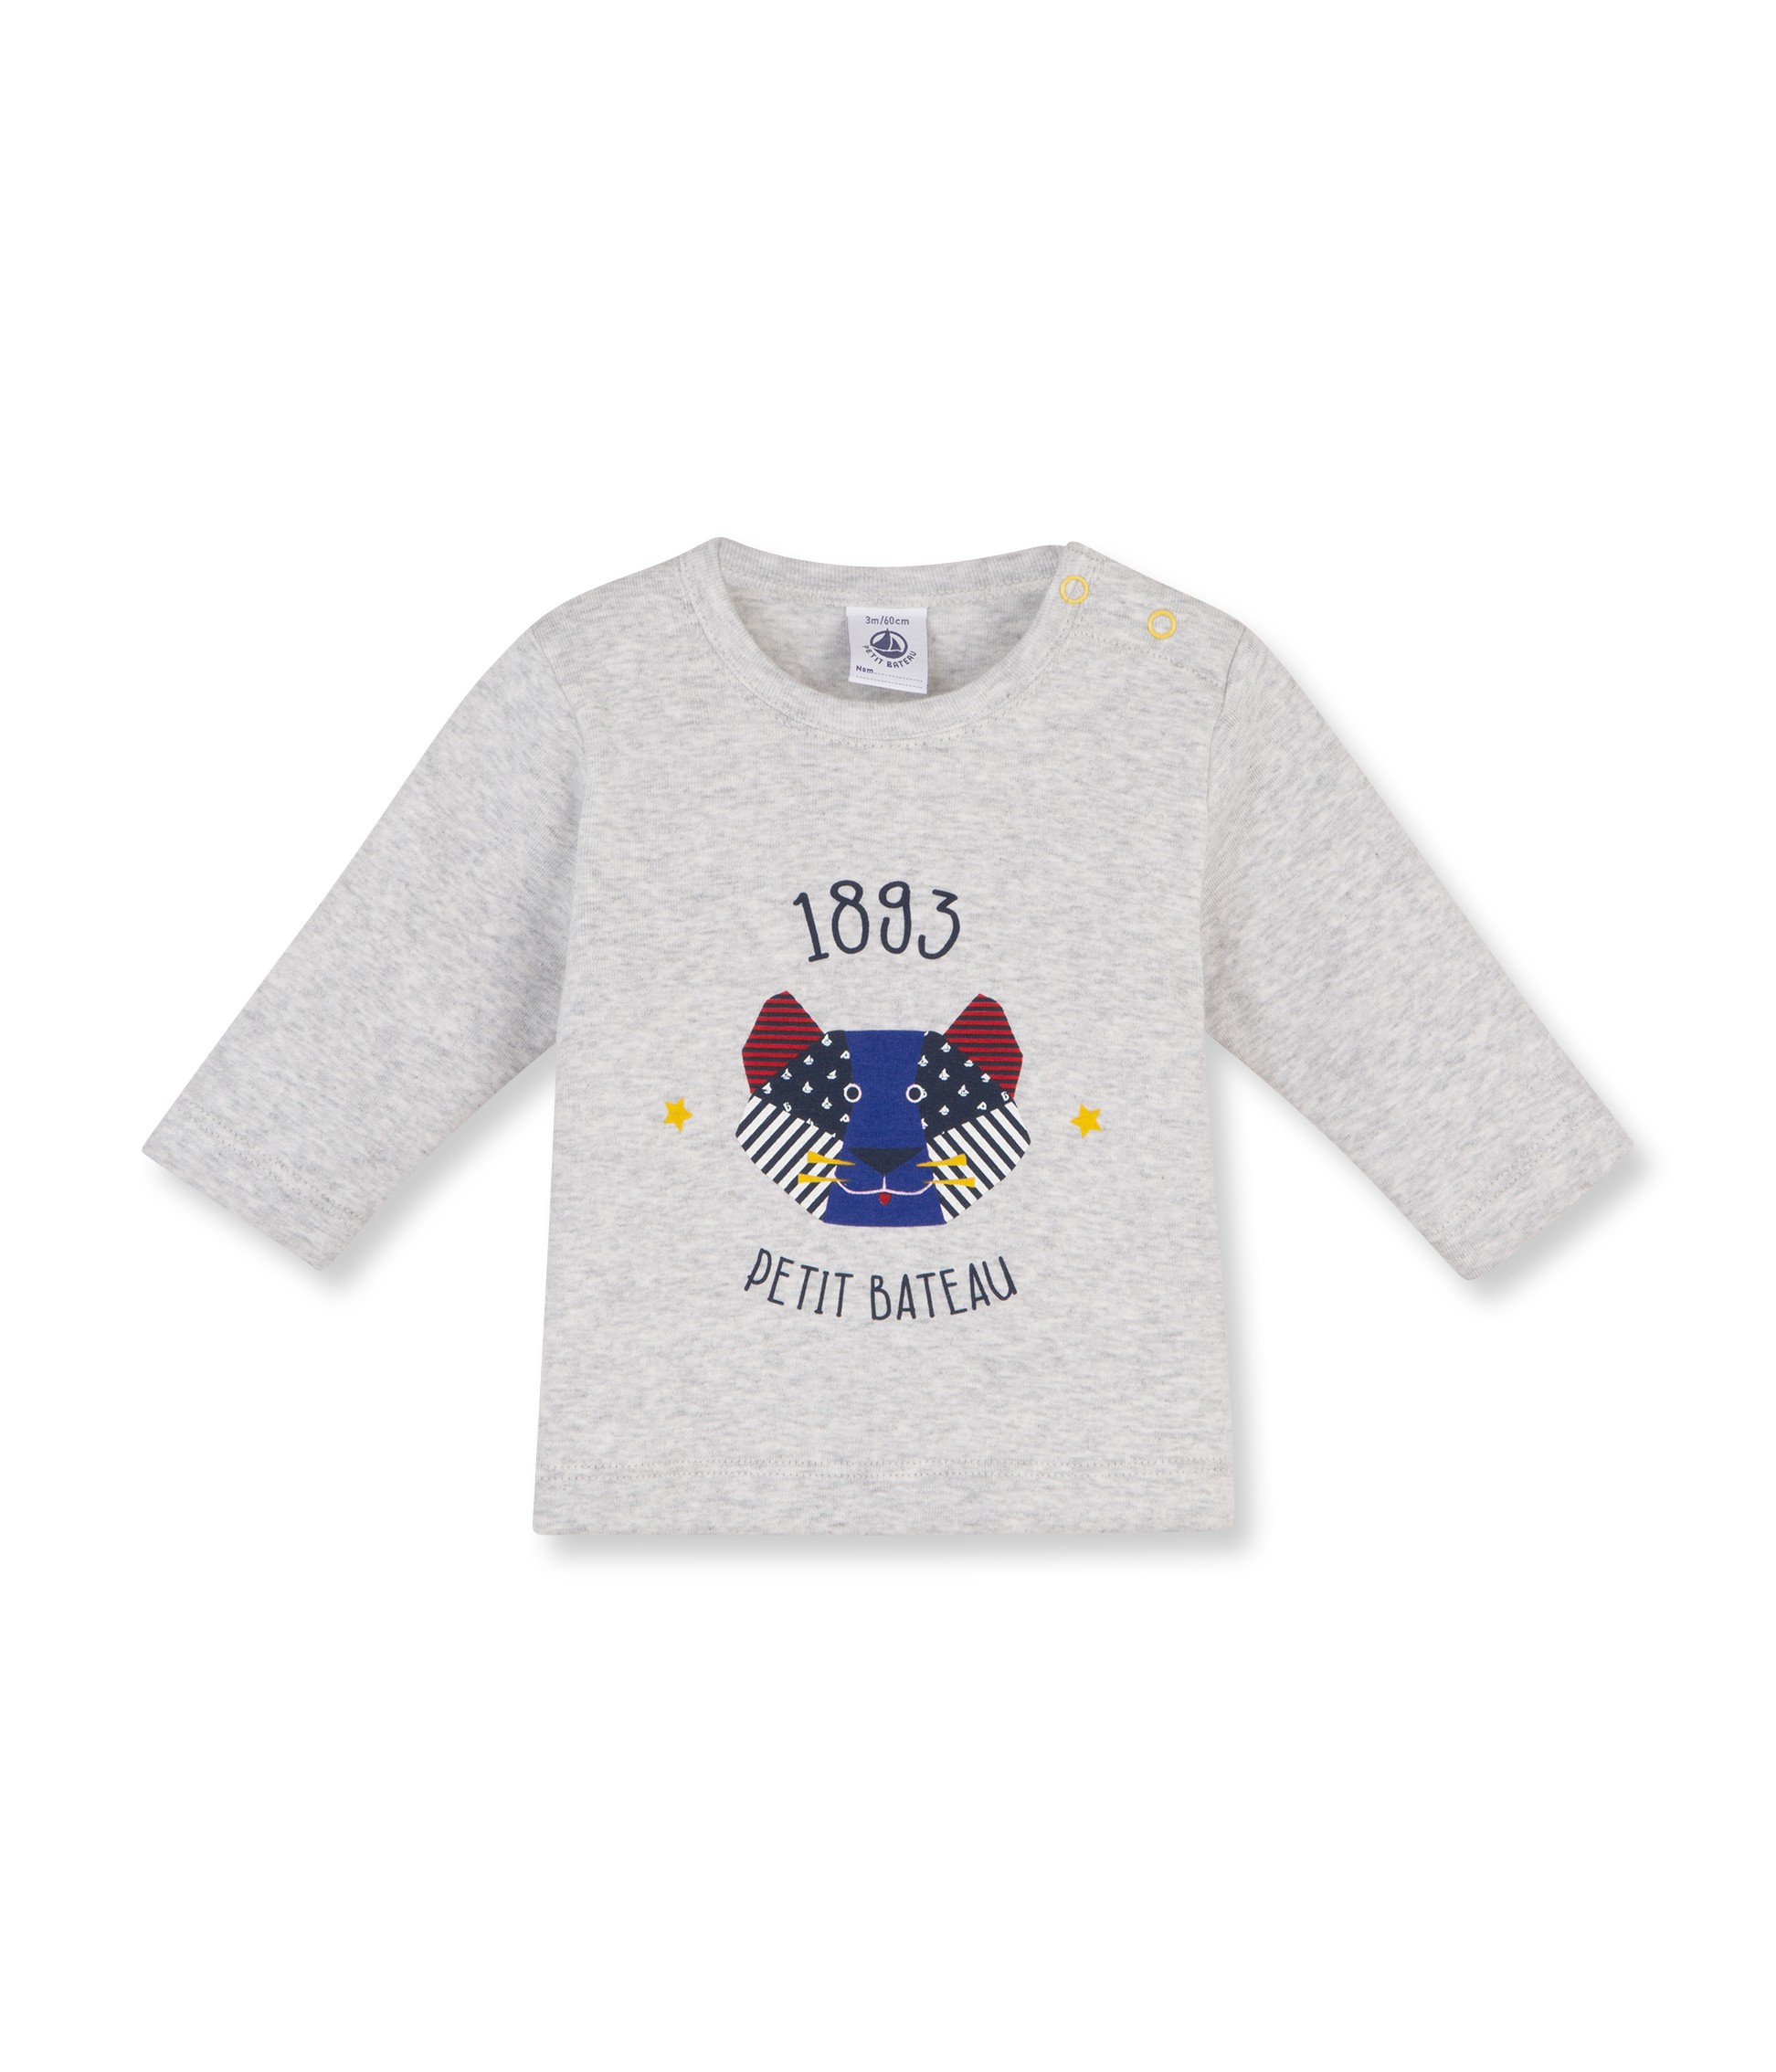 Petit Bateau T-Shirt Long-Sleeved Boy Mottled Light Grey encequiconcerne Origami Petit Bateau